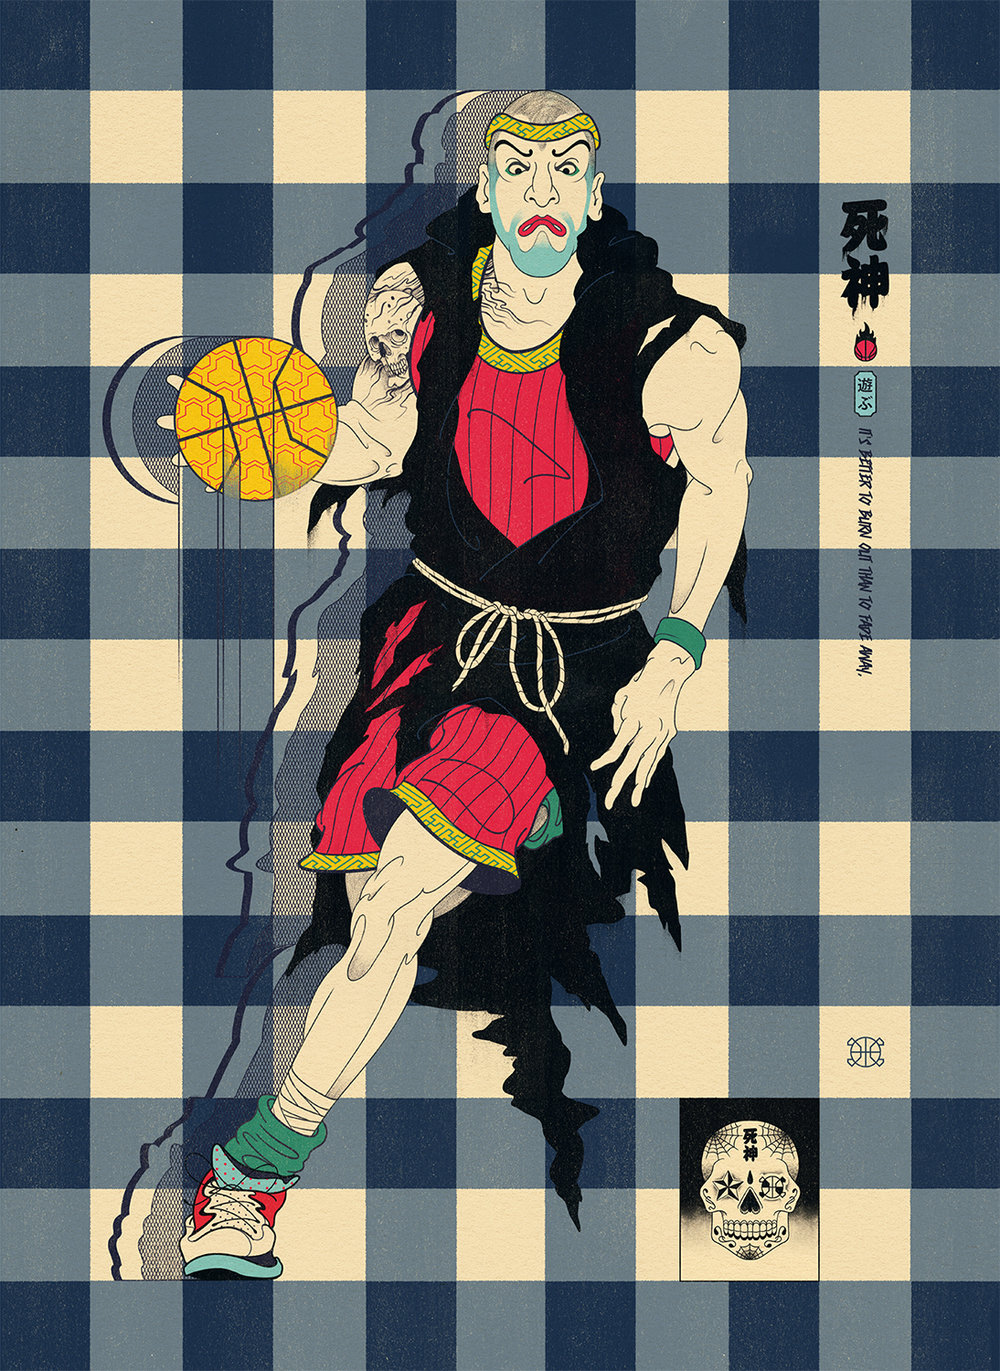 Basketball art inspired by the game for the ultimate hoop fan. Edo Ball is a series of artworks inspired by Basketball, Japan, NBA and Culture. Each artwork has a story behind it.